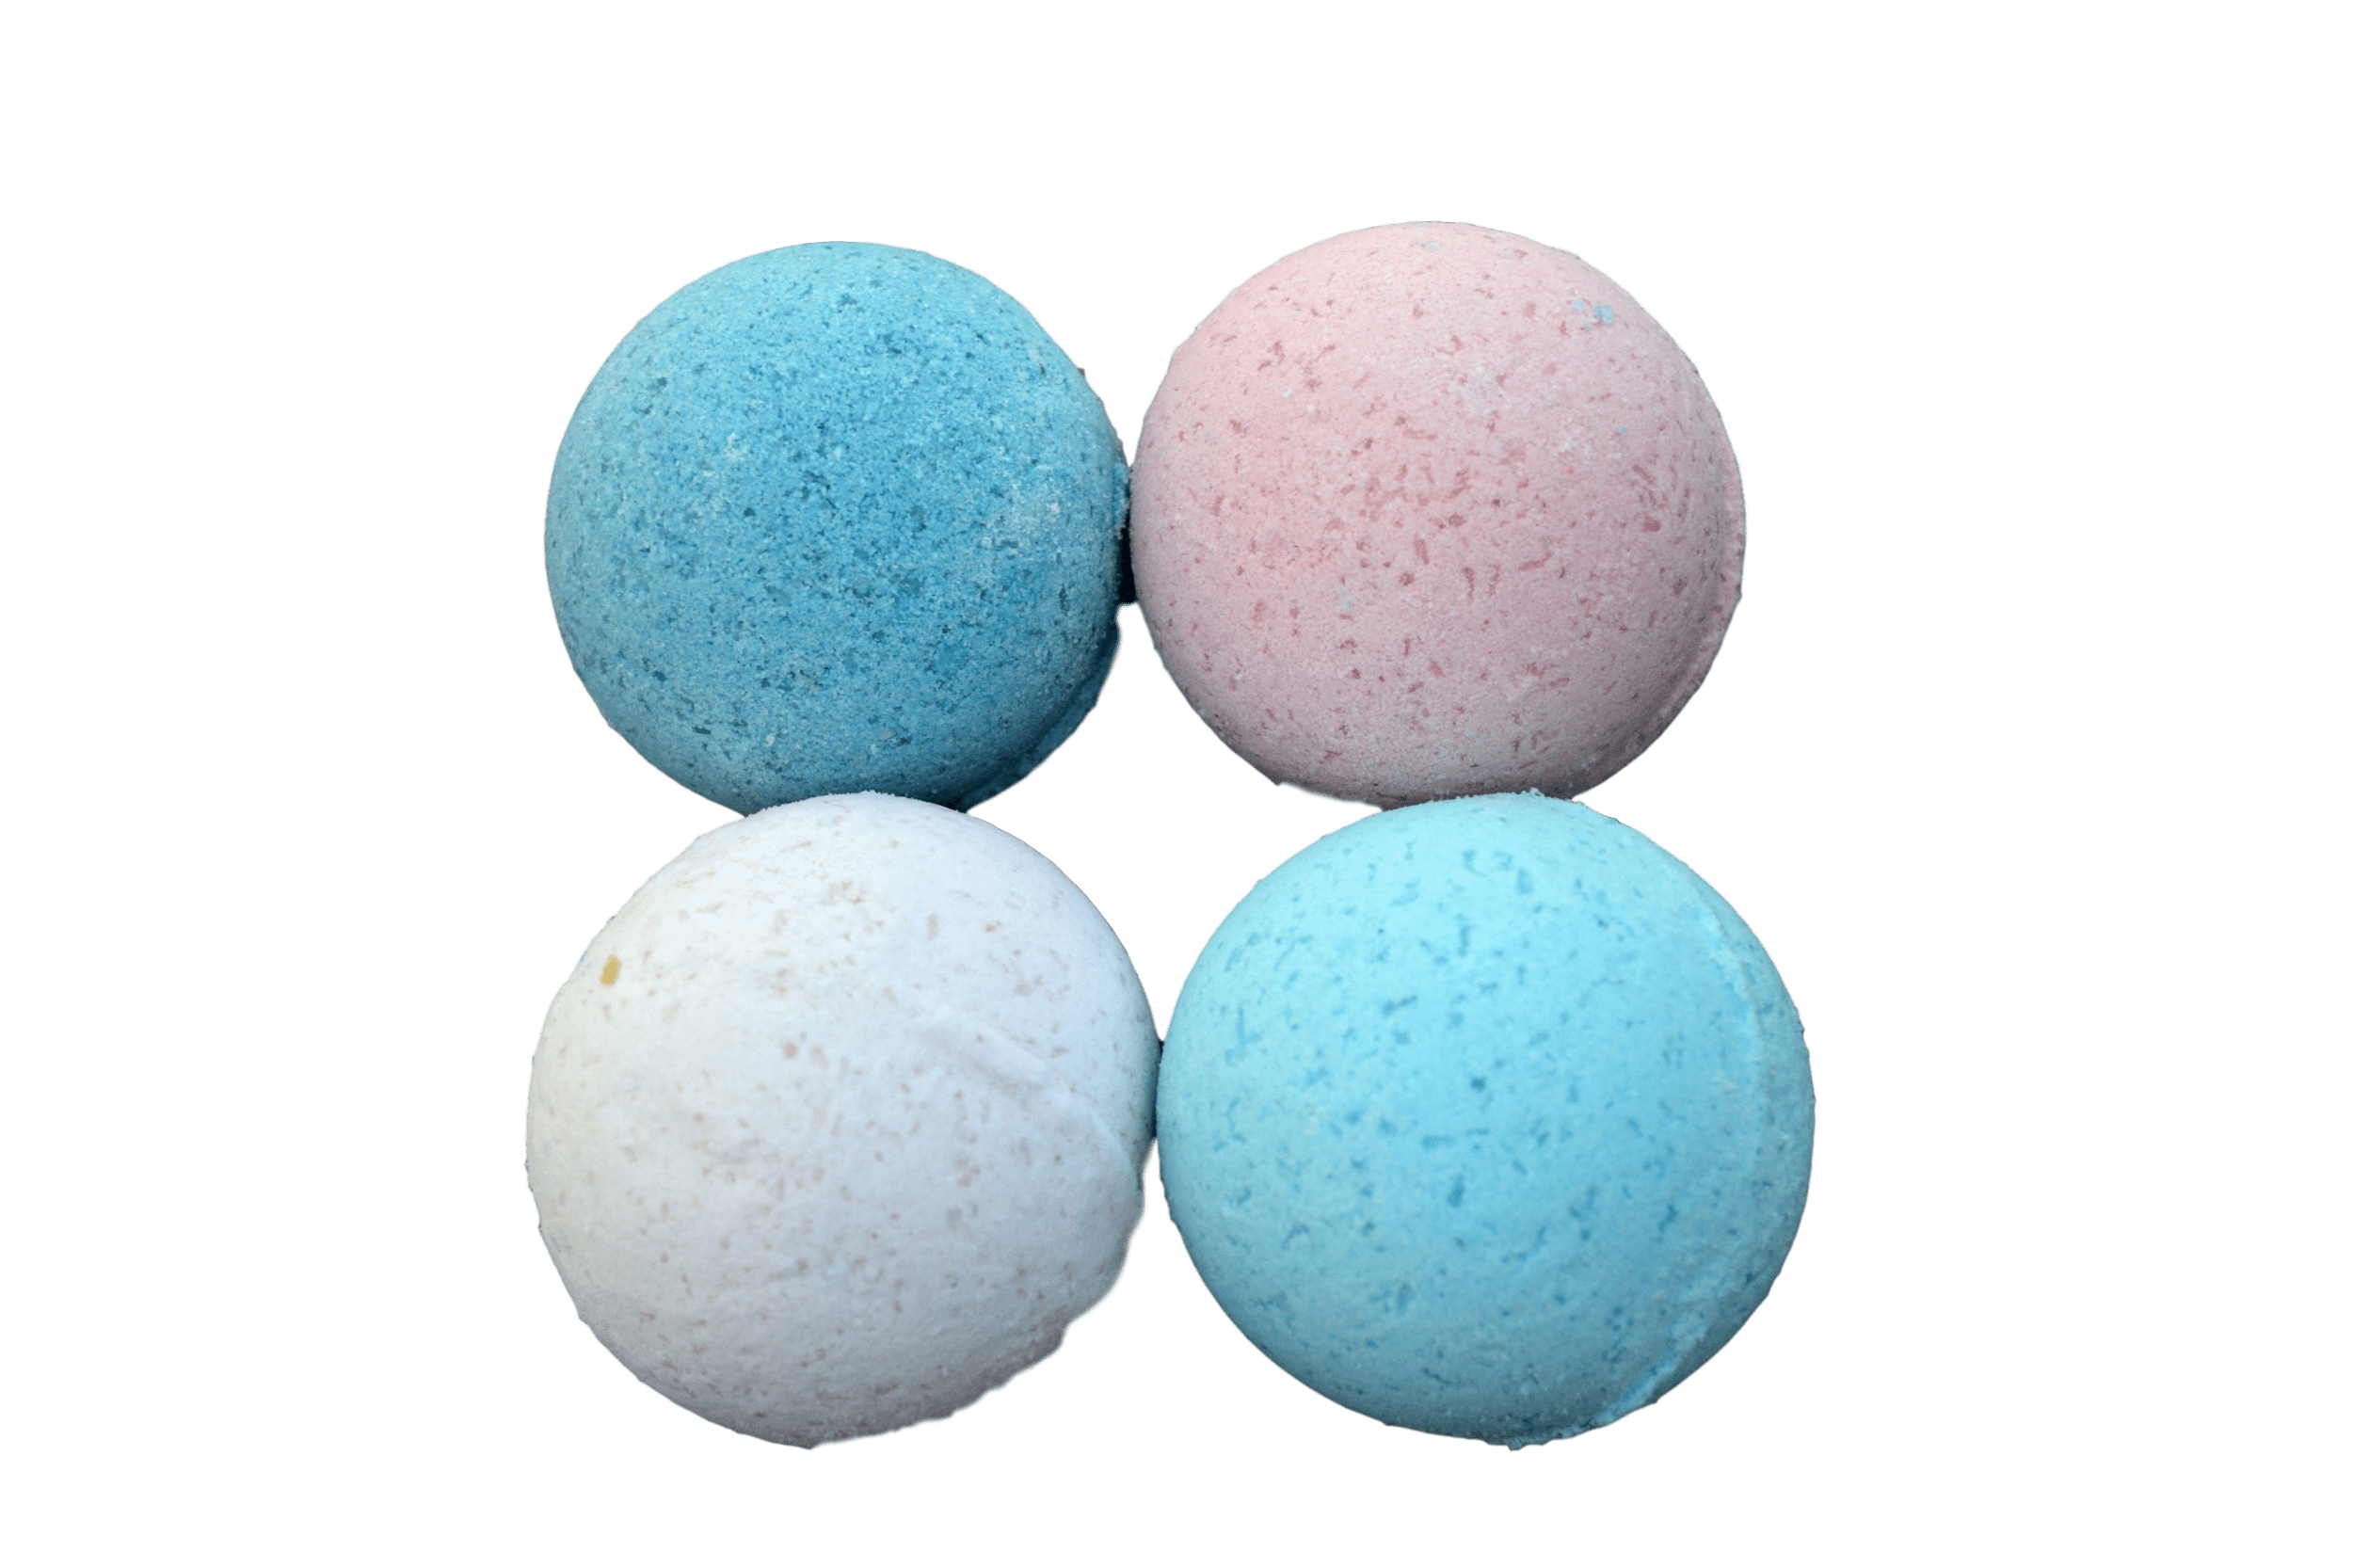 Fizzing Bath Bombs – Buy 5, Get 1 Free